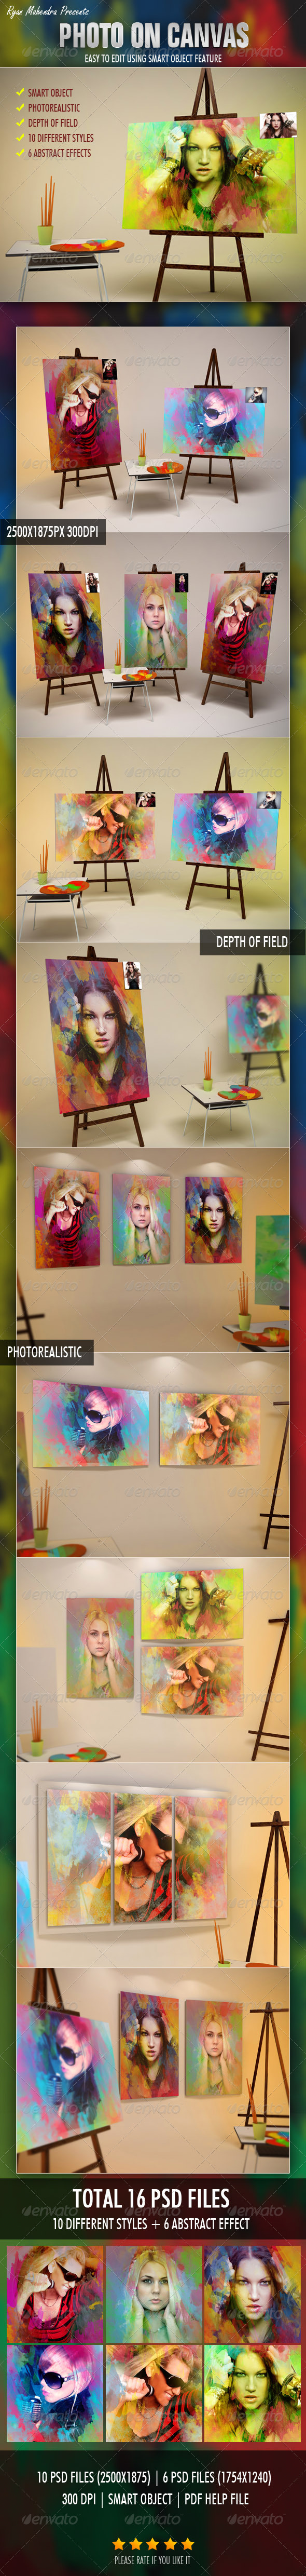 GraphicRiver Photo On Canvas 3273462